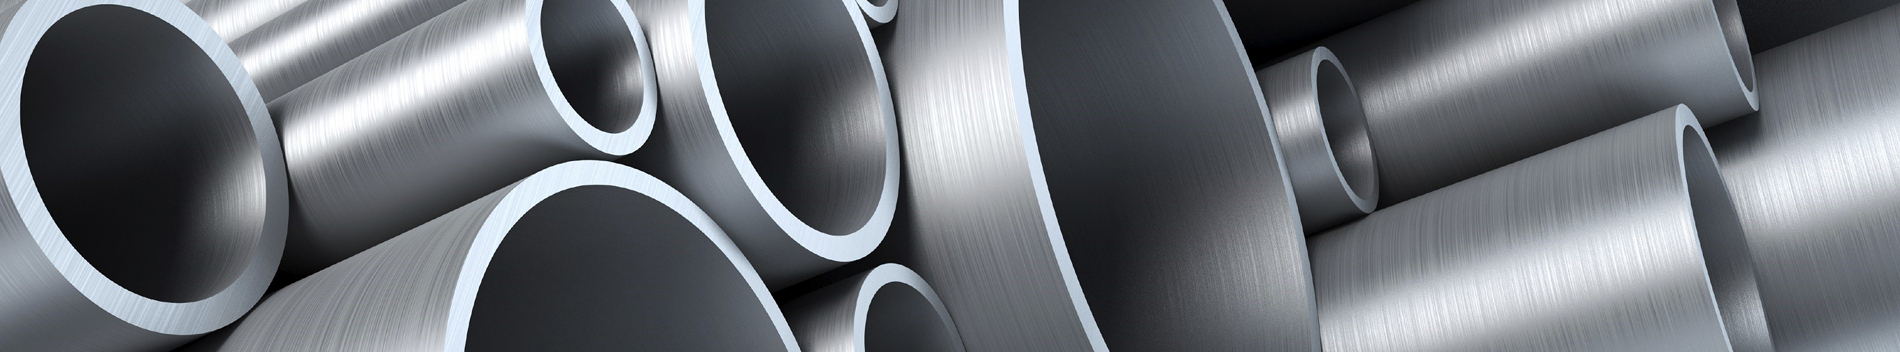 Nickel Alloys, stainless steel & Titanium Vessels